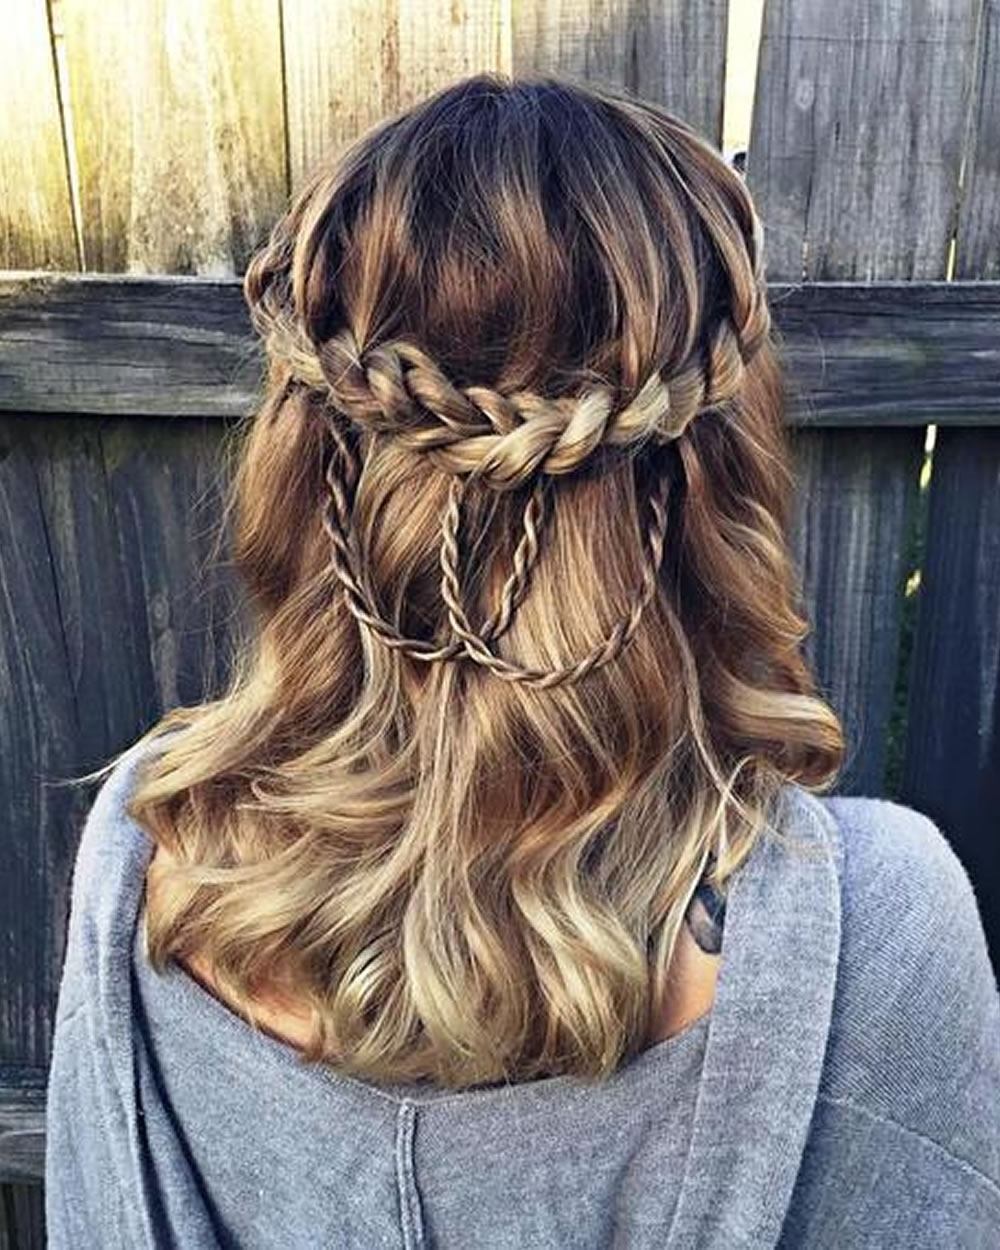 French Braid Half Up Half Down 2018 Inside Fashionable Half French Braid Ponytail Hairstyles (View 7 of 20)